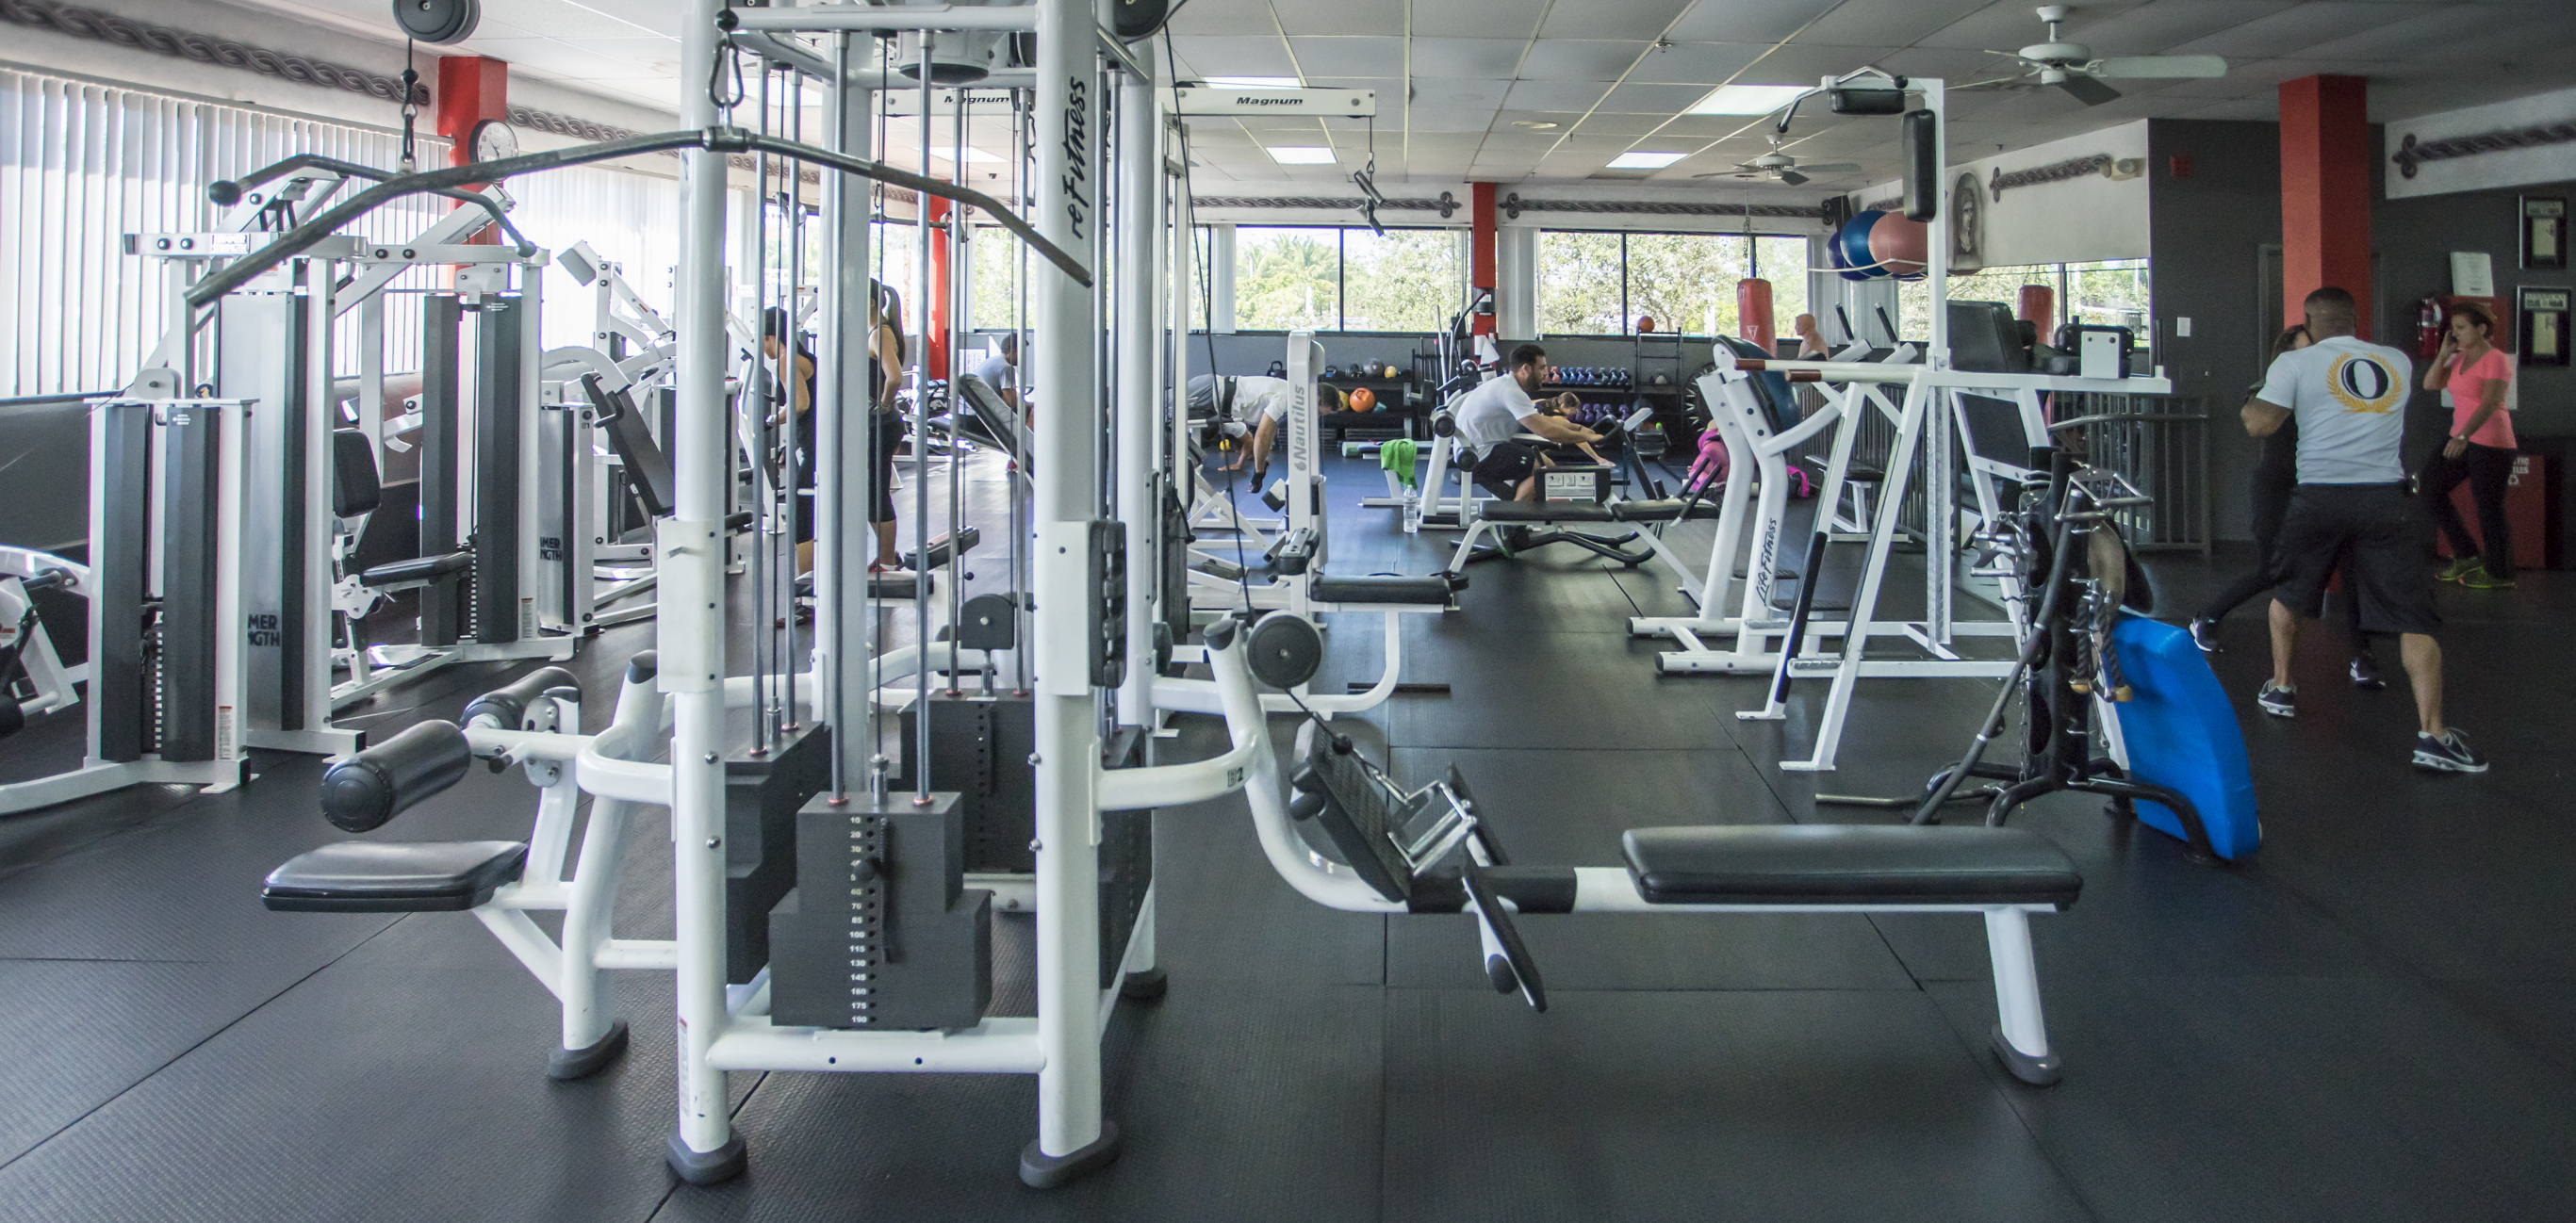 Olympia Gym Amenities Facilities And Services Olympia